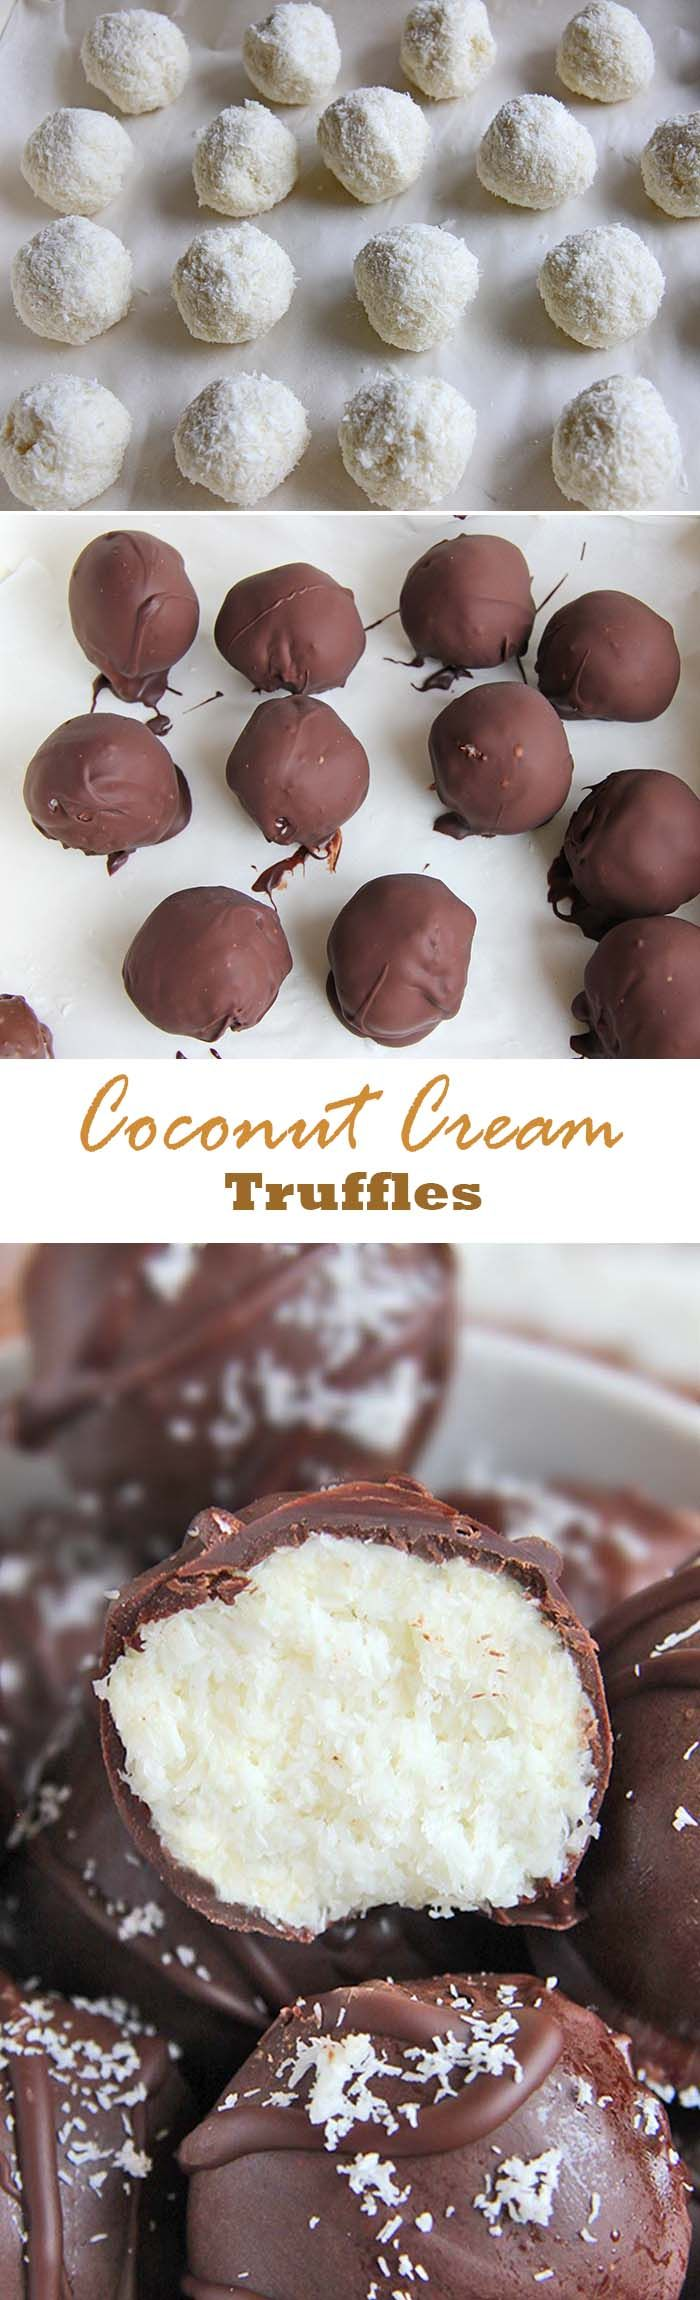 These easy chocolate coconut cream truffles are a coconut and chocolate lovers dream. #coconut #truffles #condensedmilk